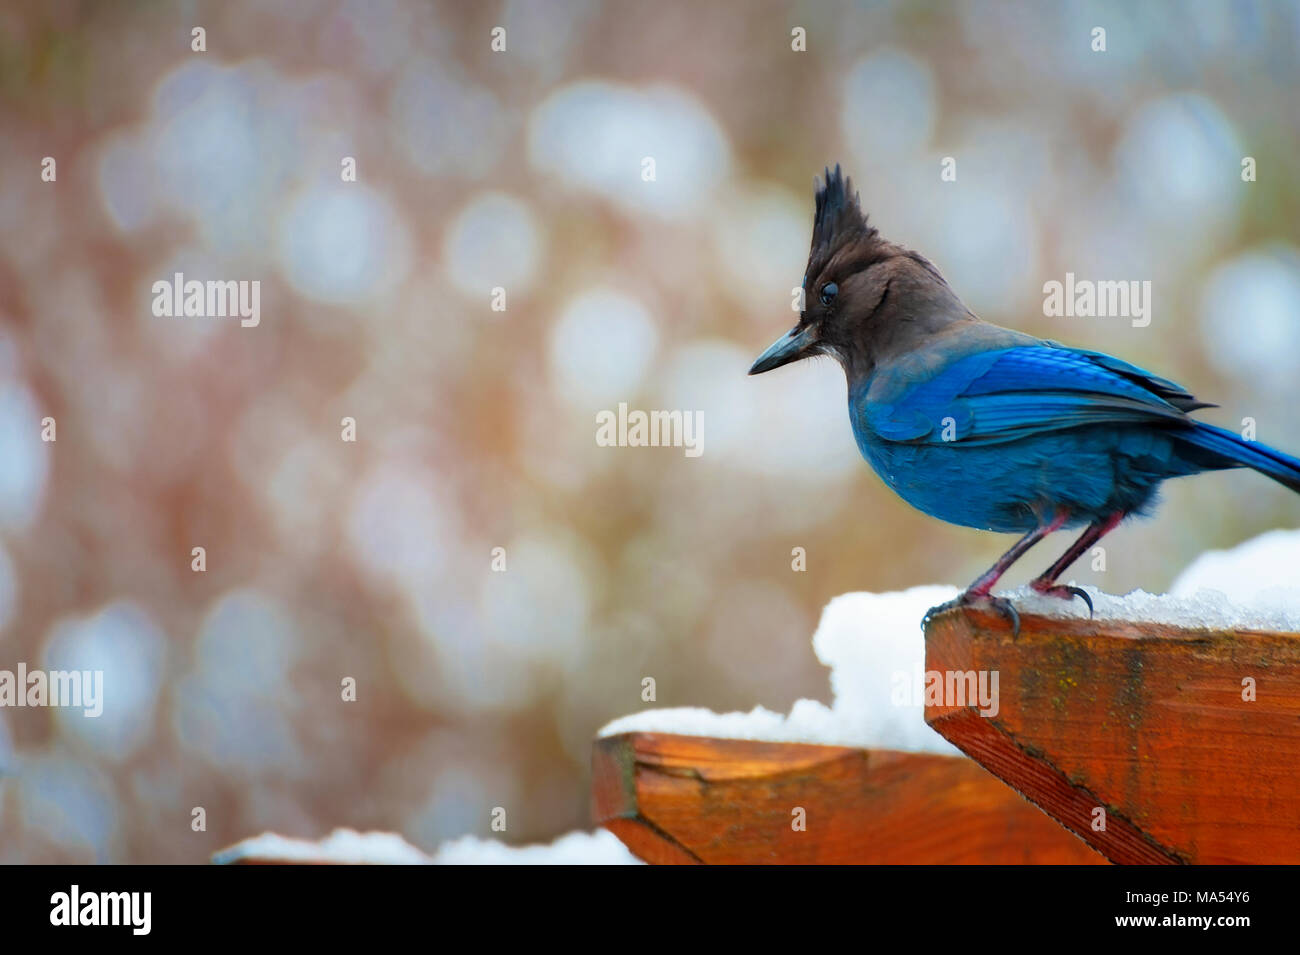 Copy space available in this closeup of a Blue Jay perched on top of a wooden arbor with snow on it. Stock Photo